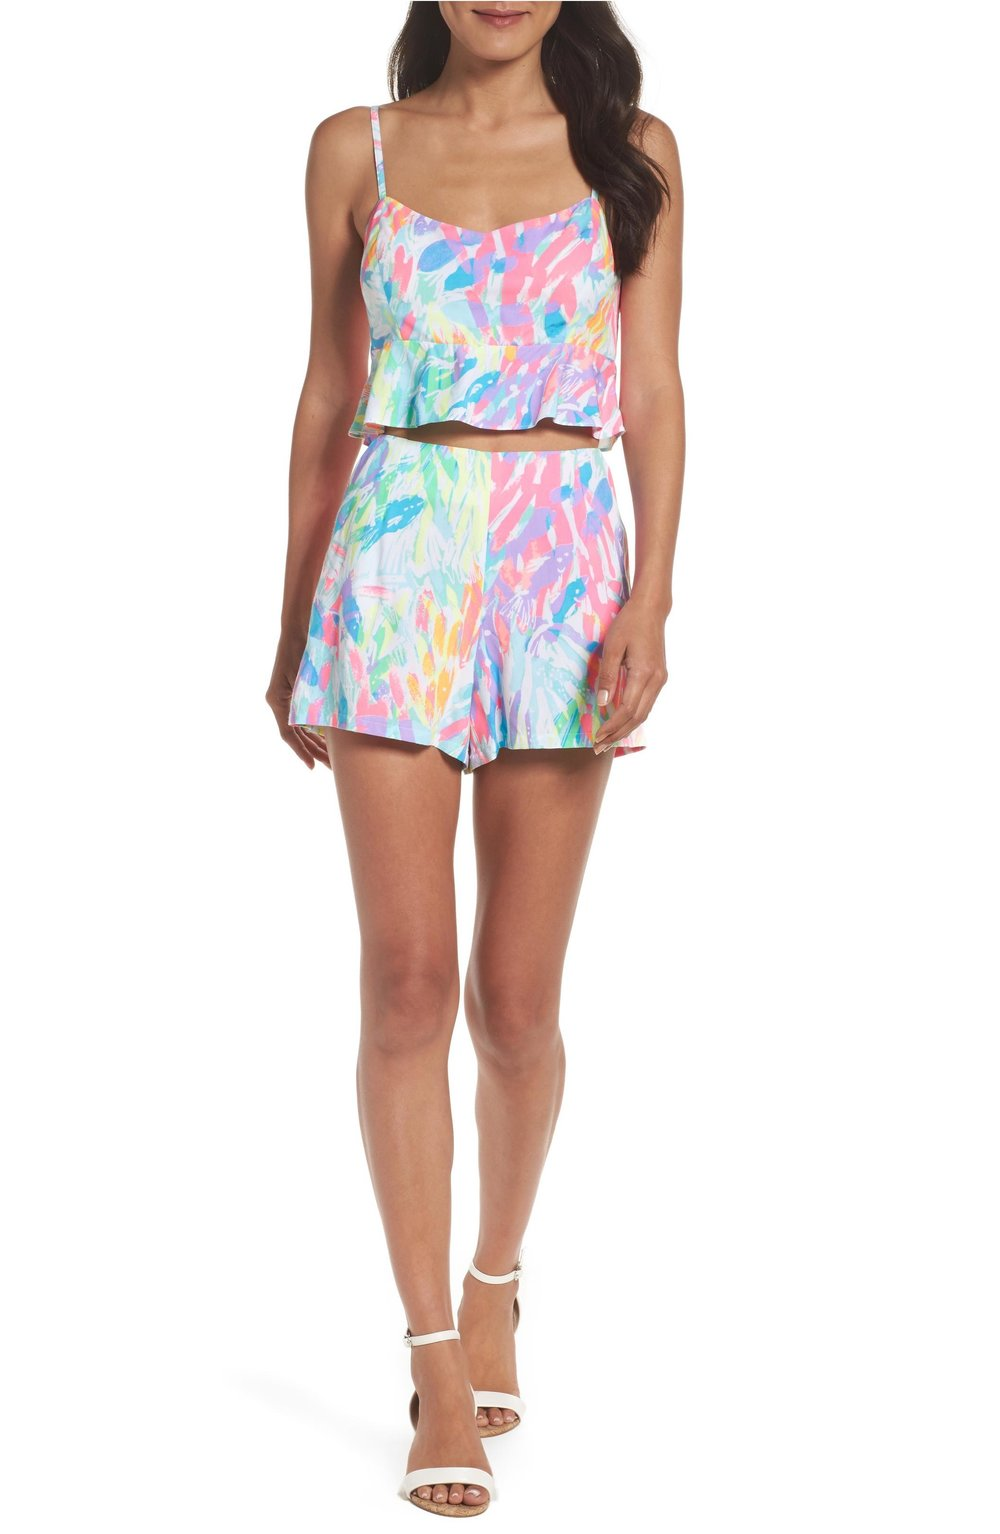 Lilly Pulitzer linnea crop top & short set in